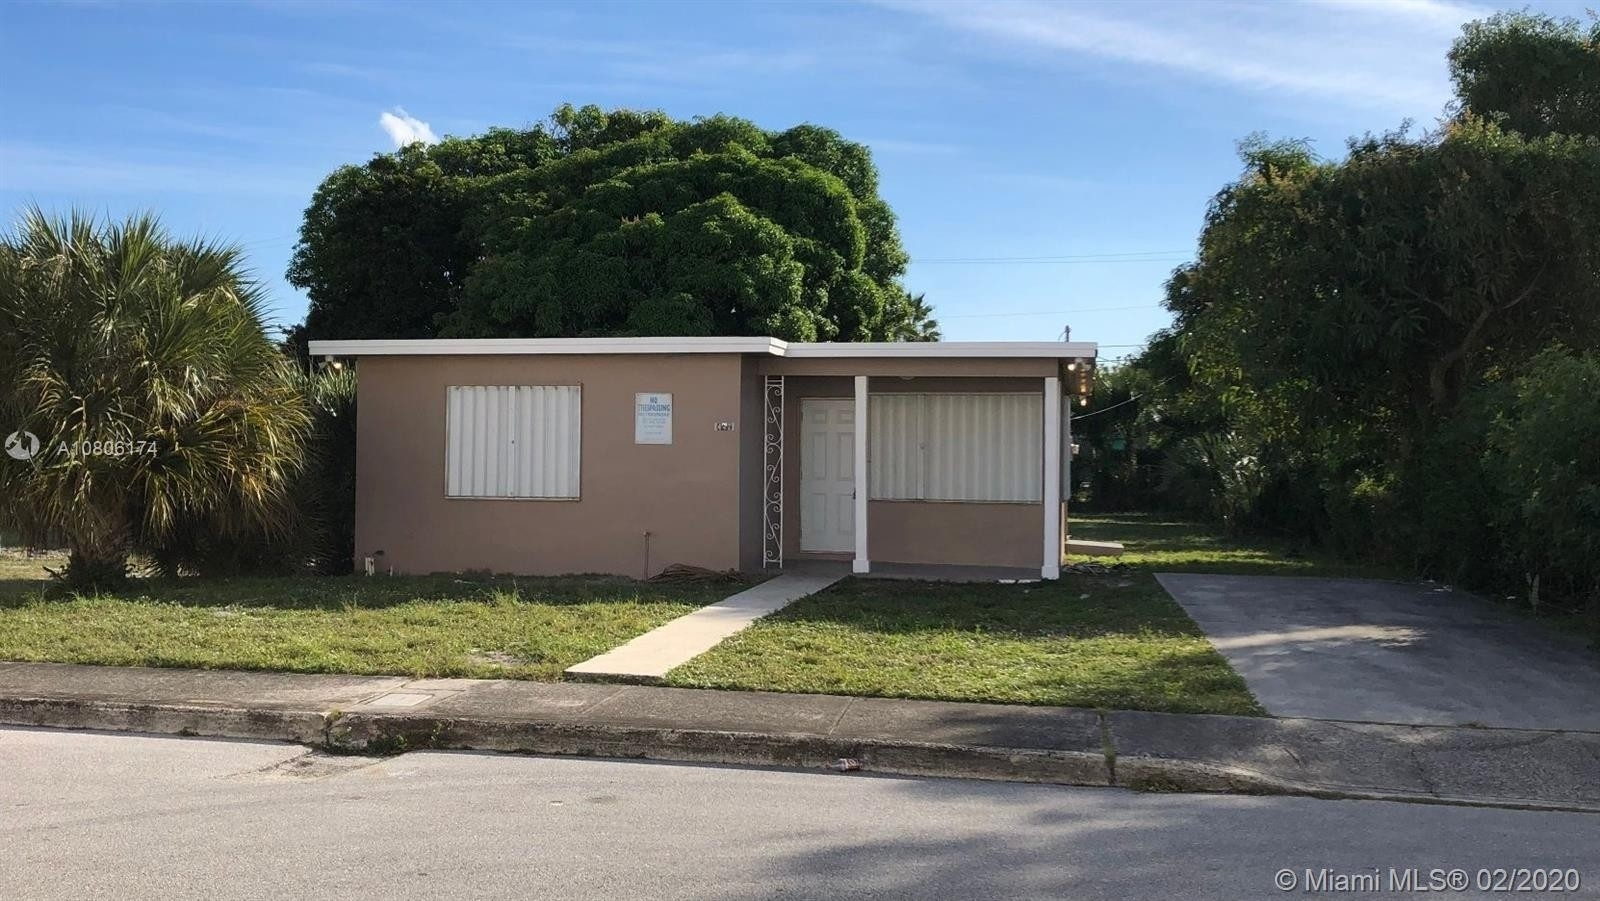 Maison unifamiliale pour l Vente à Pleasant City, West Palm Beach, FL 33407